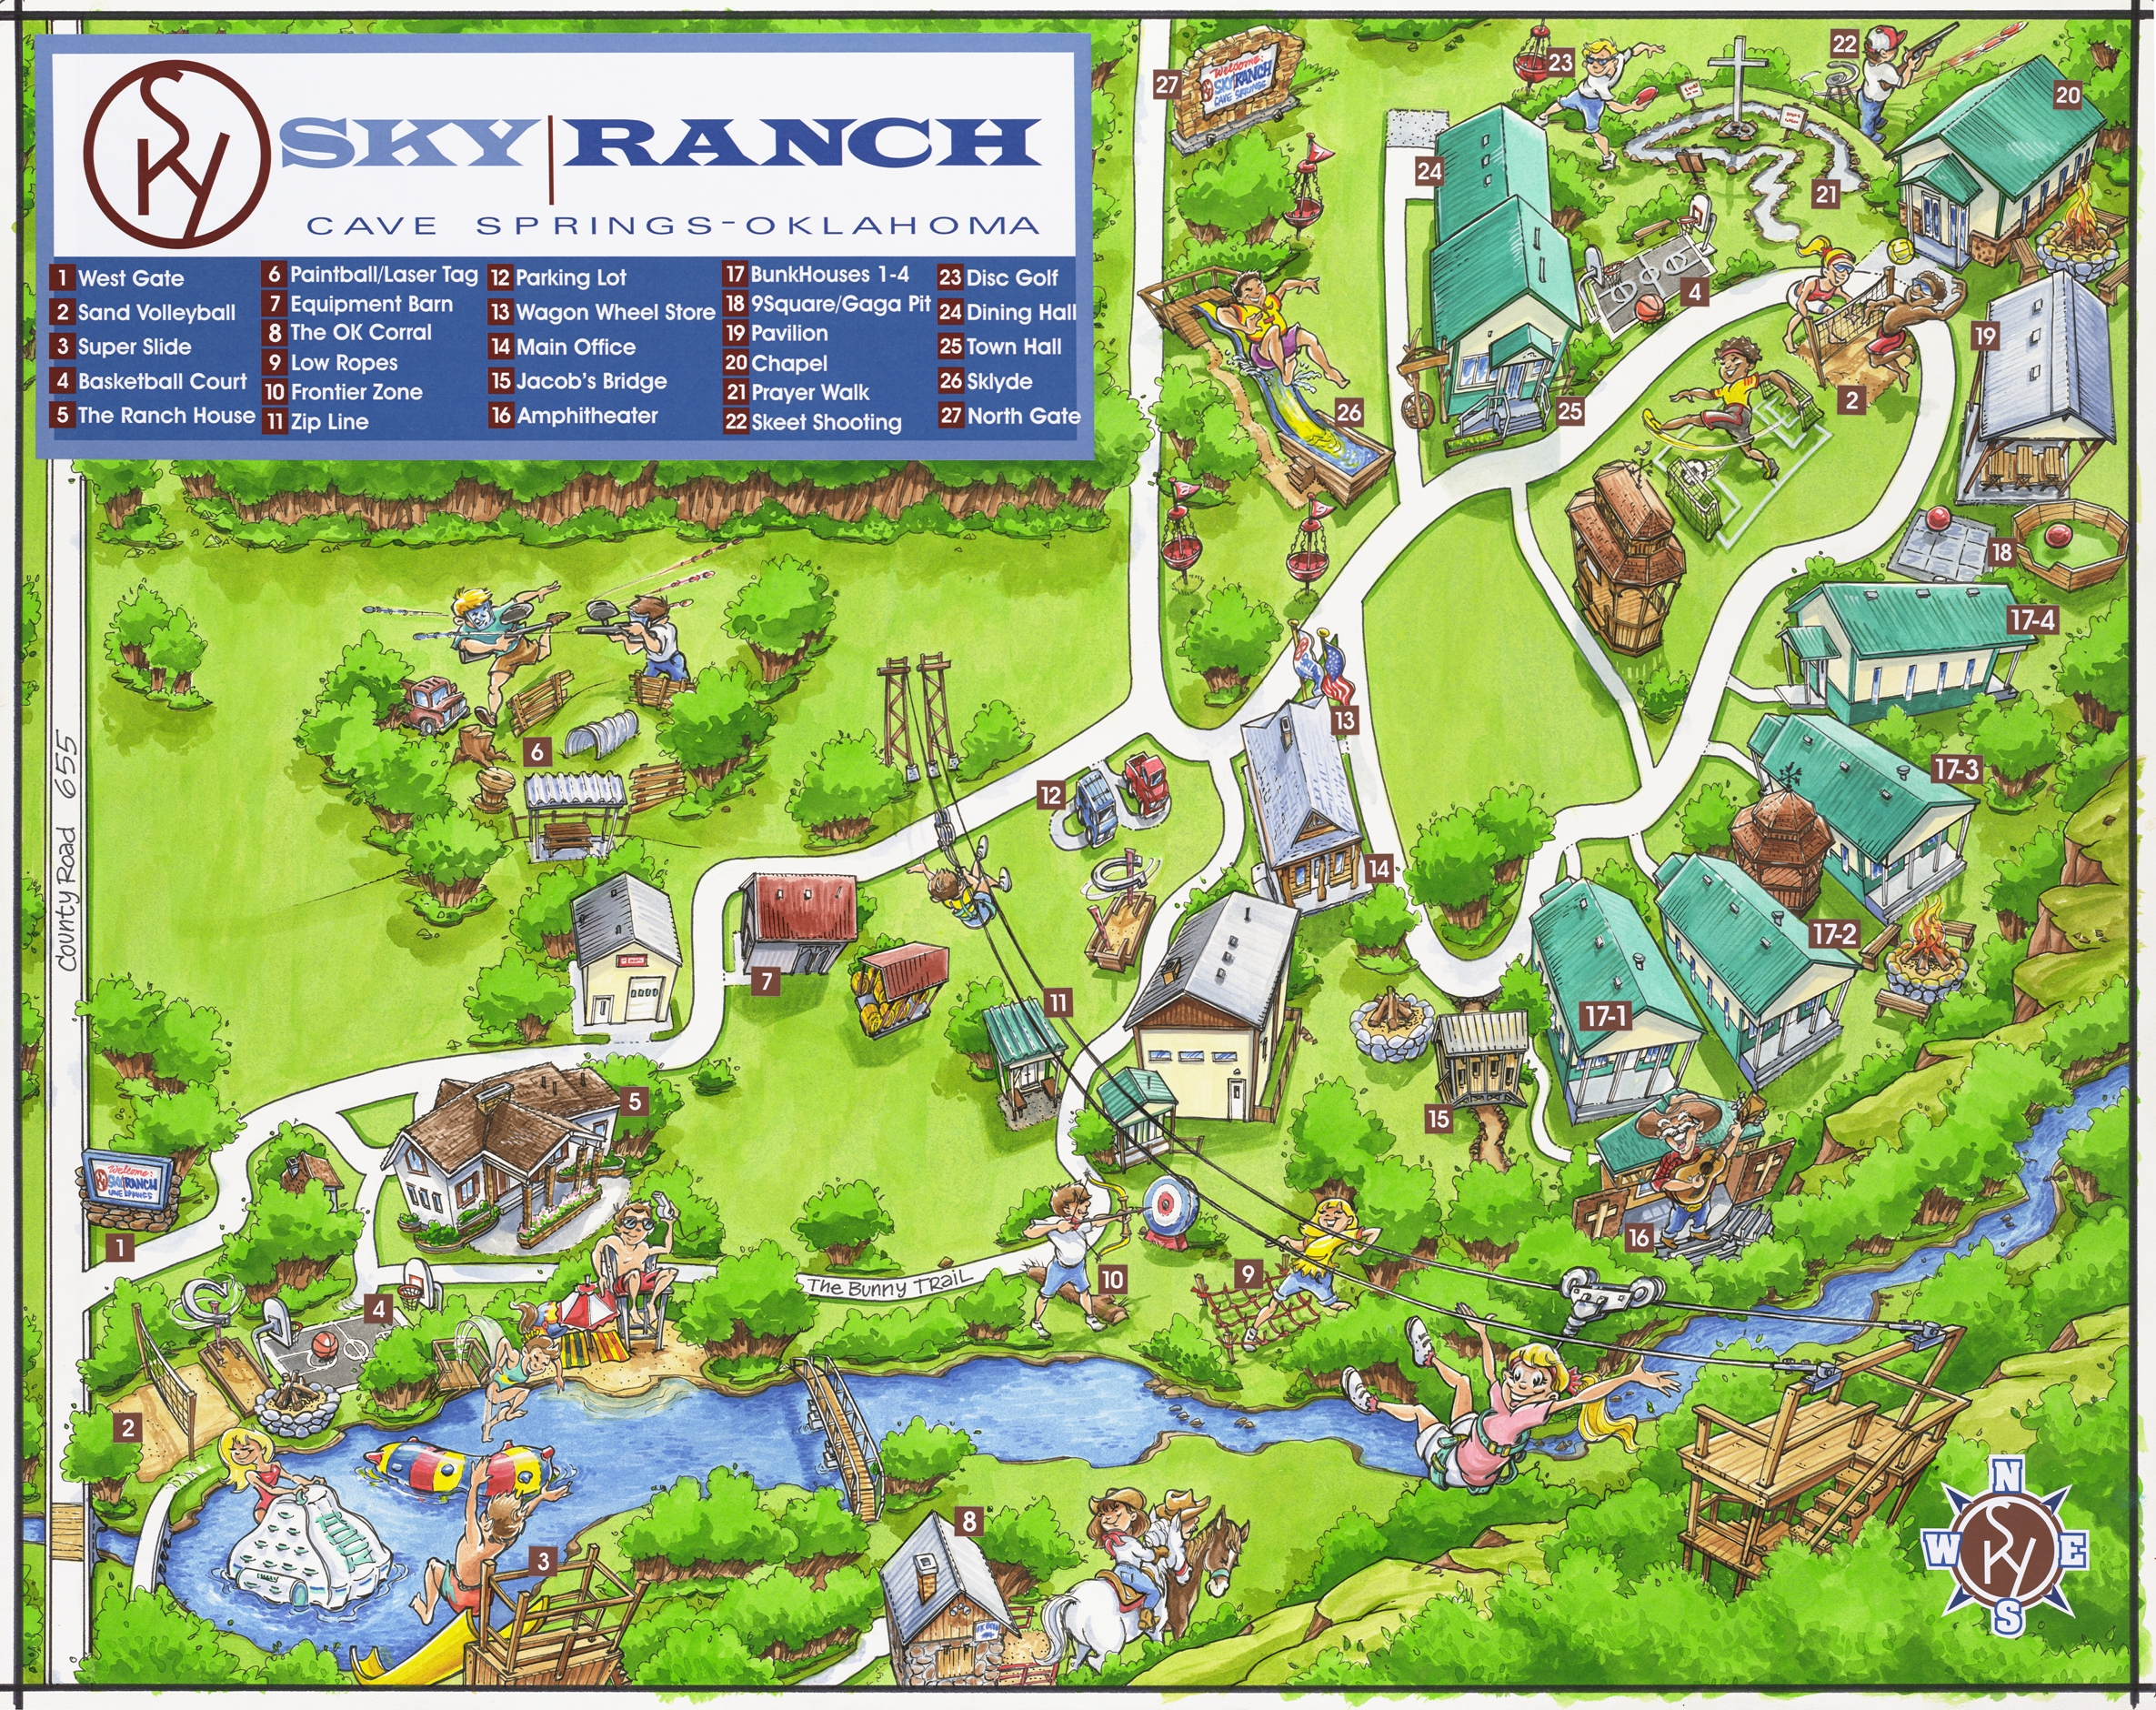 Campus For Retreat 2013 - Sky Ranch Texas Map